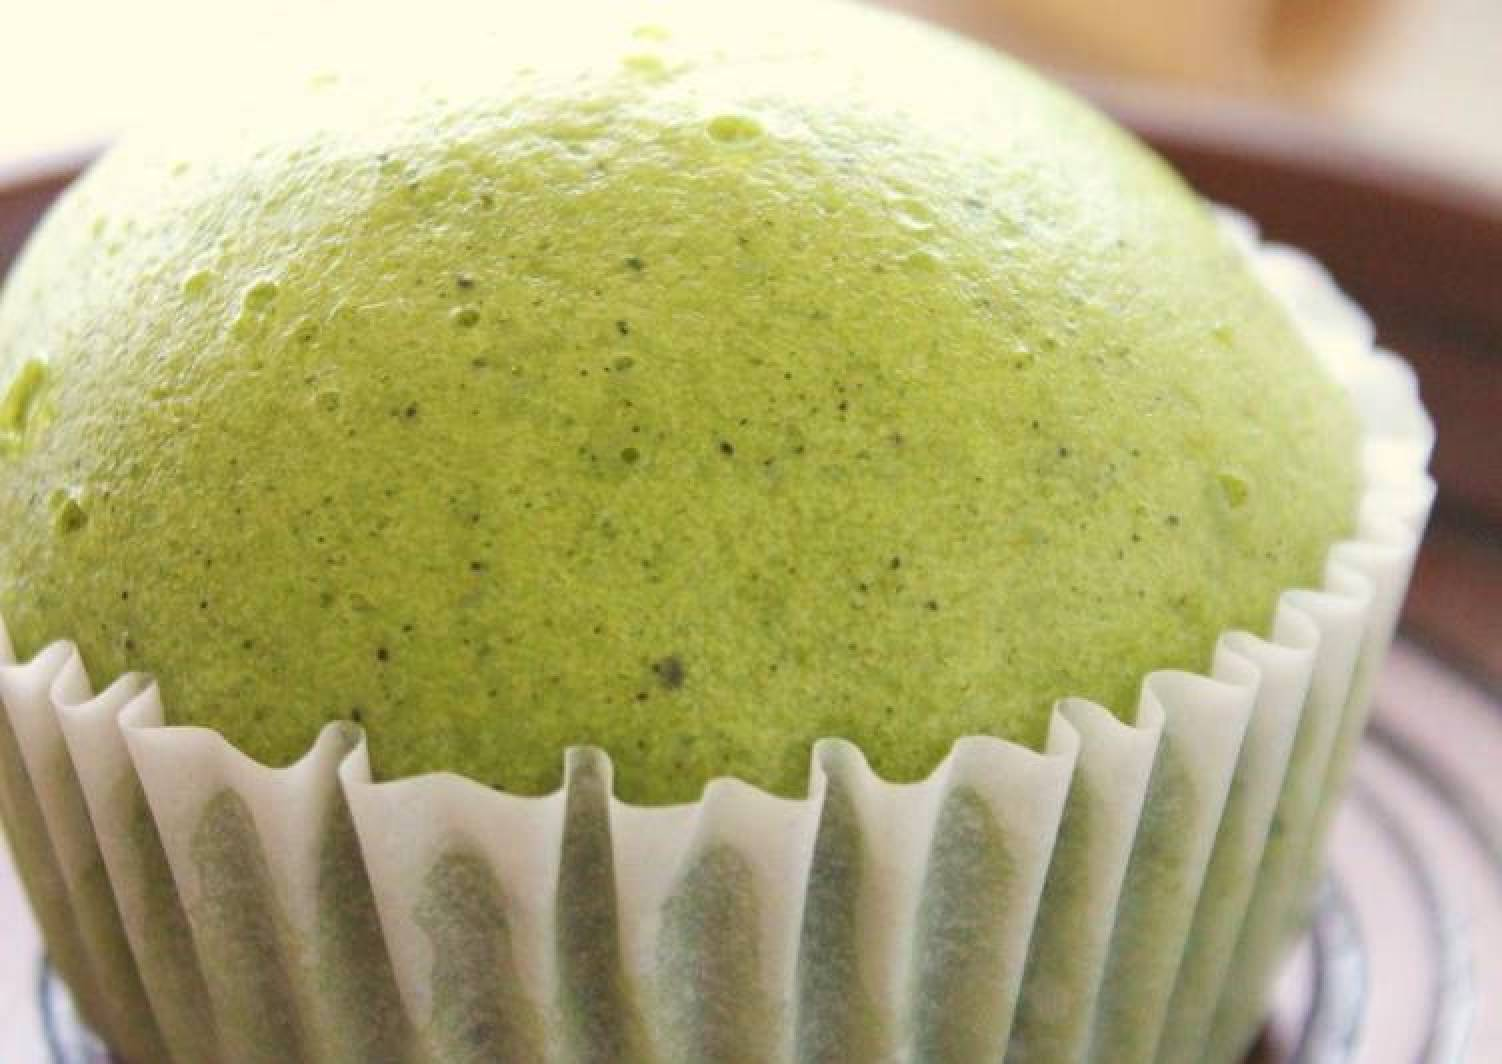 Steamed Matcha Green Tea Buns with Pancake Mix